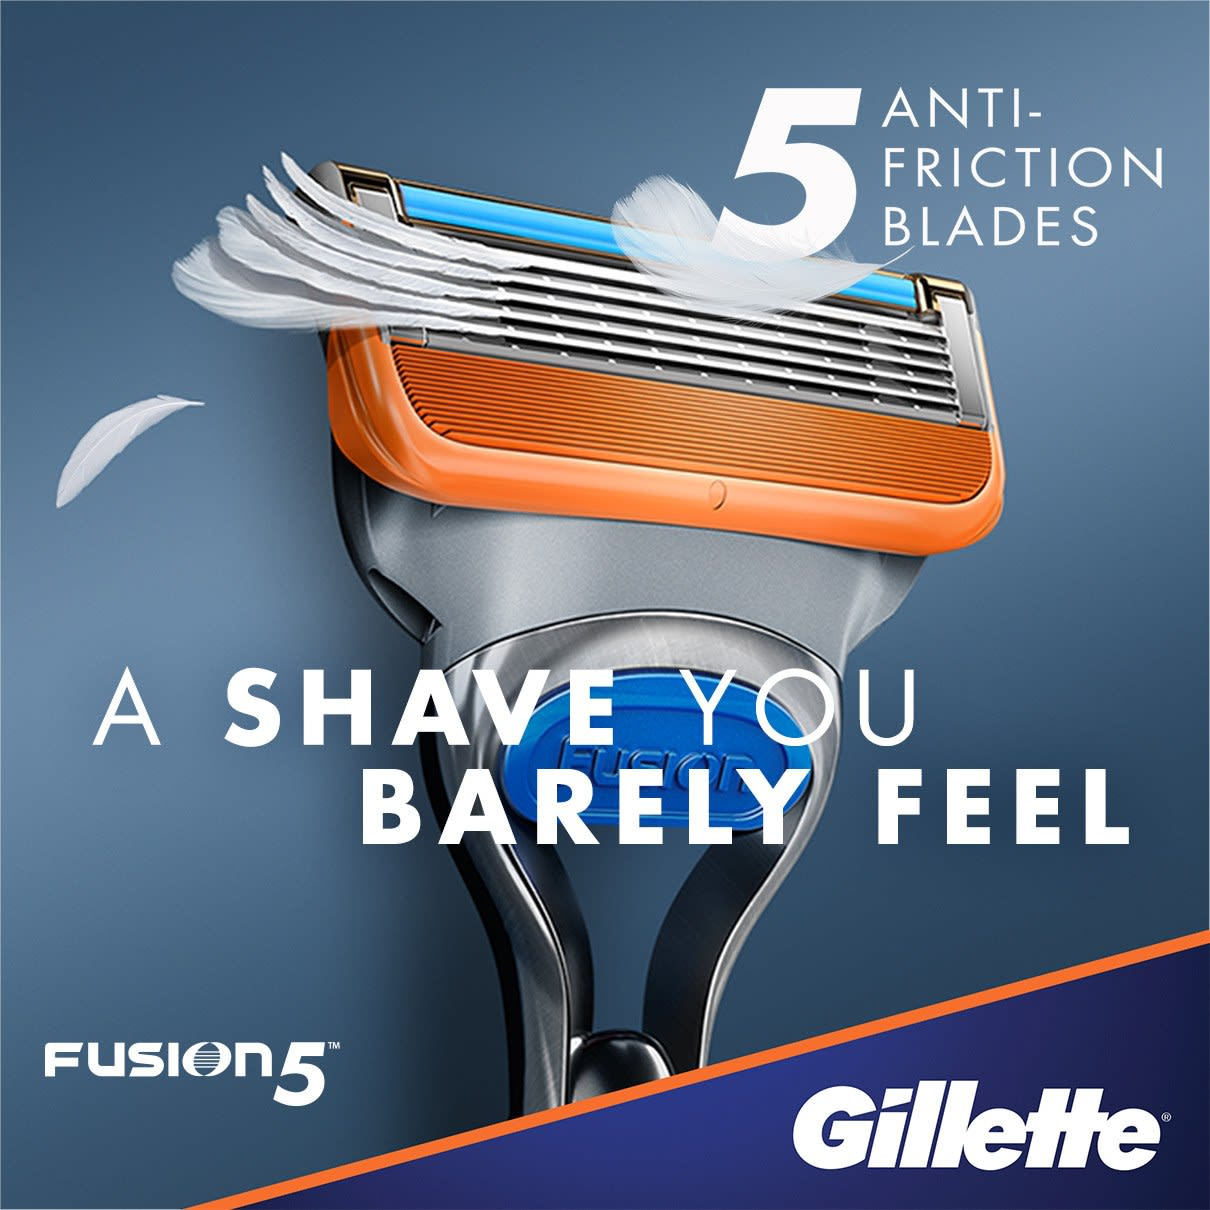 5 anti-friction blades, a shave you barely feel